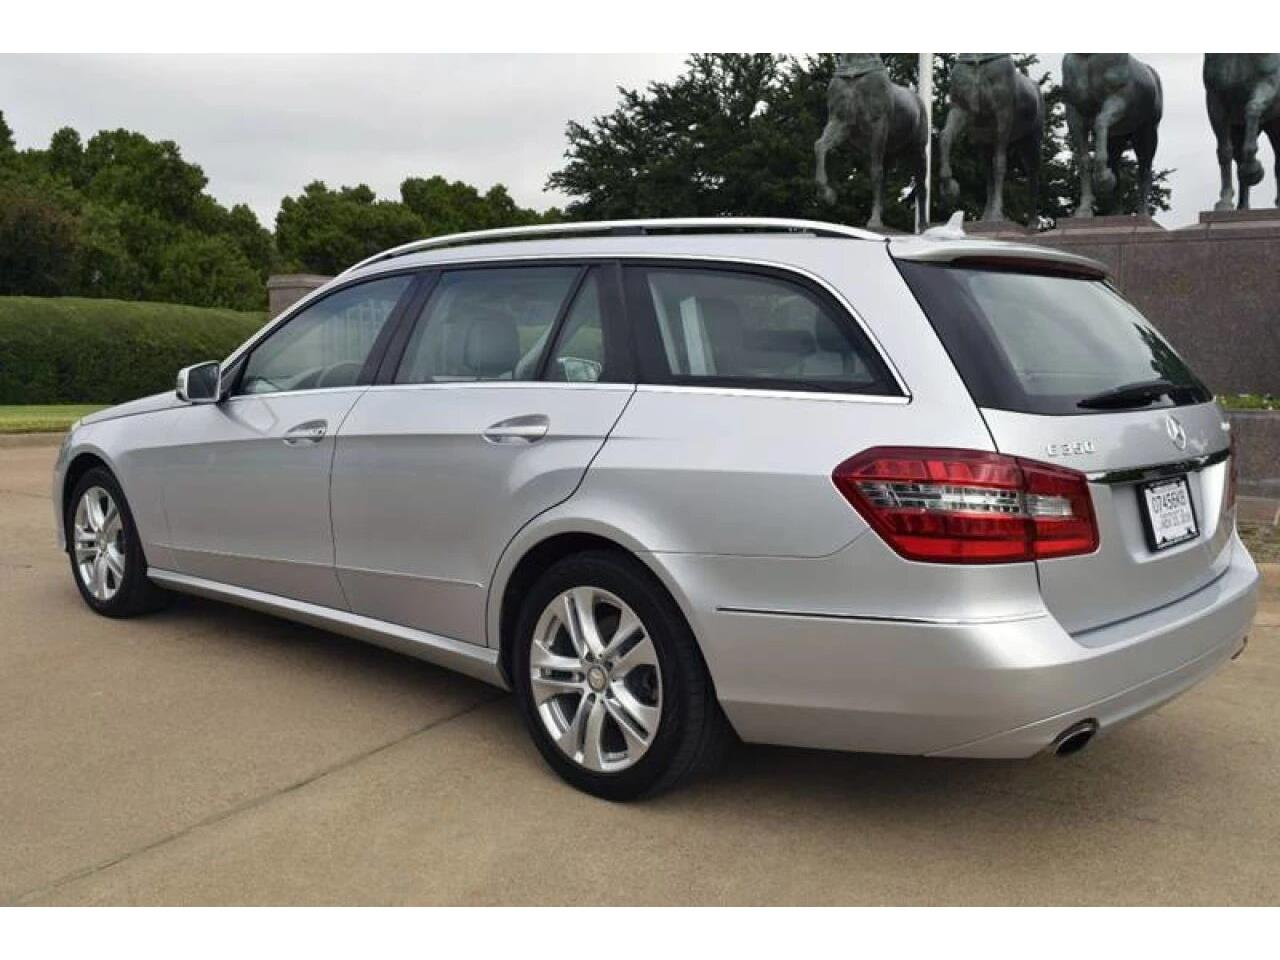 2011 Mercedes-Benz E-Class (CC-1148801) for sale in Fort Worth, Texas